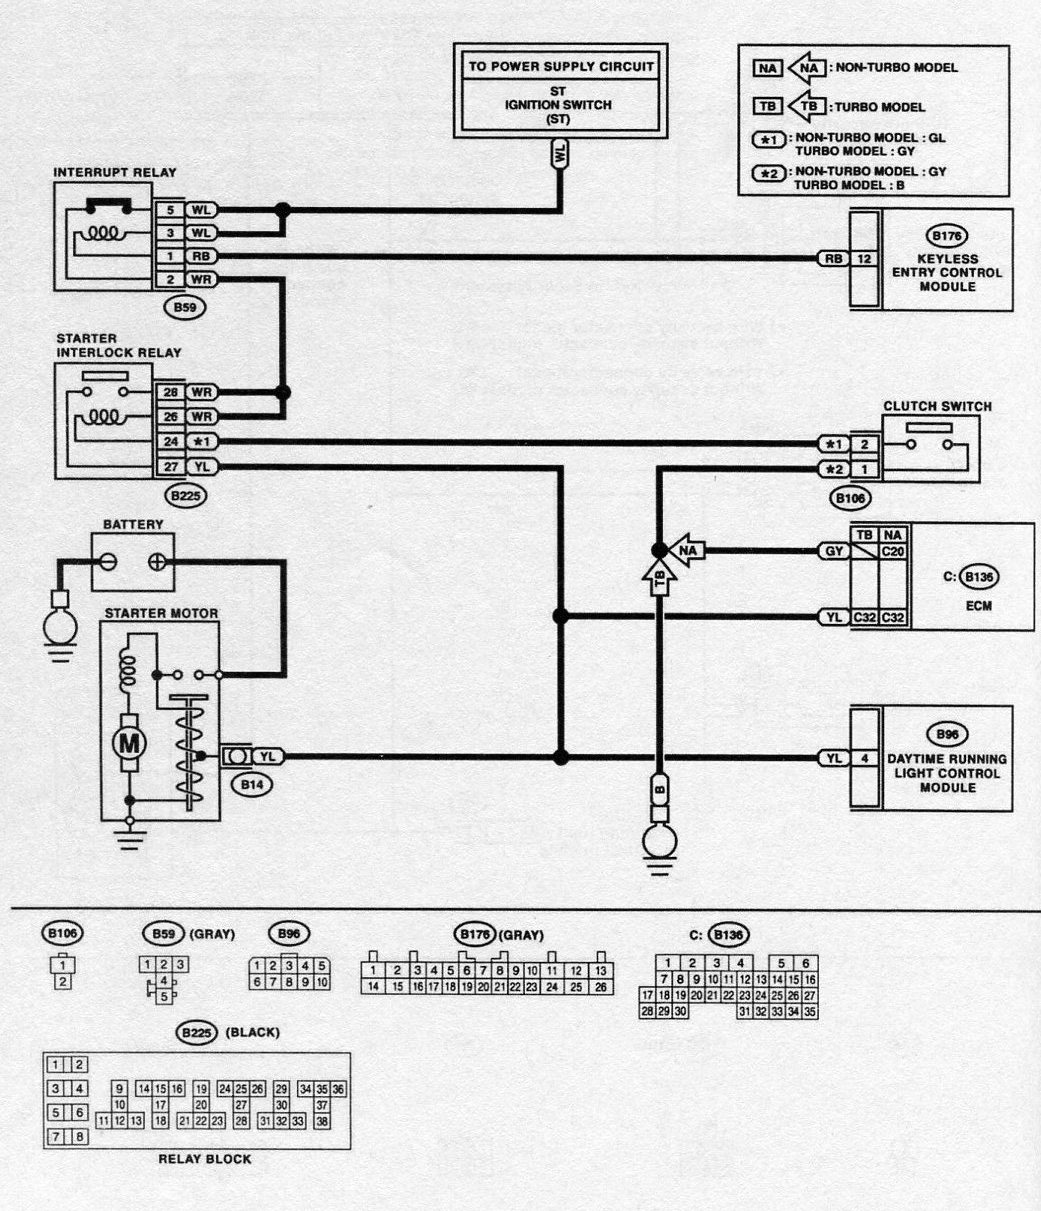 subaru impreza radio wiring diagram trailer board for 2007 outback sport